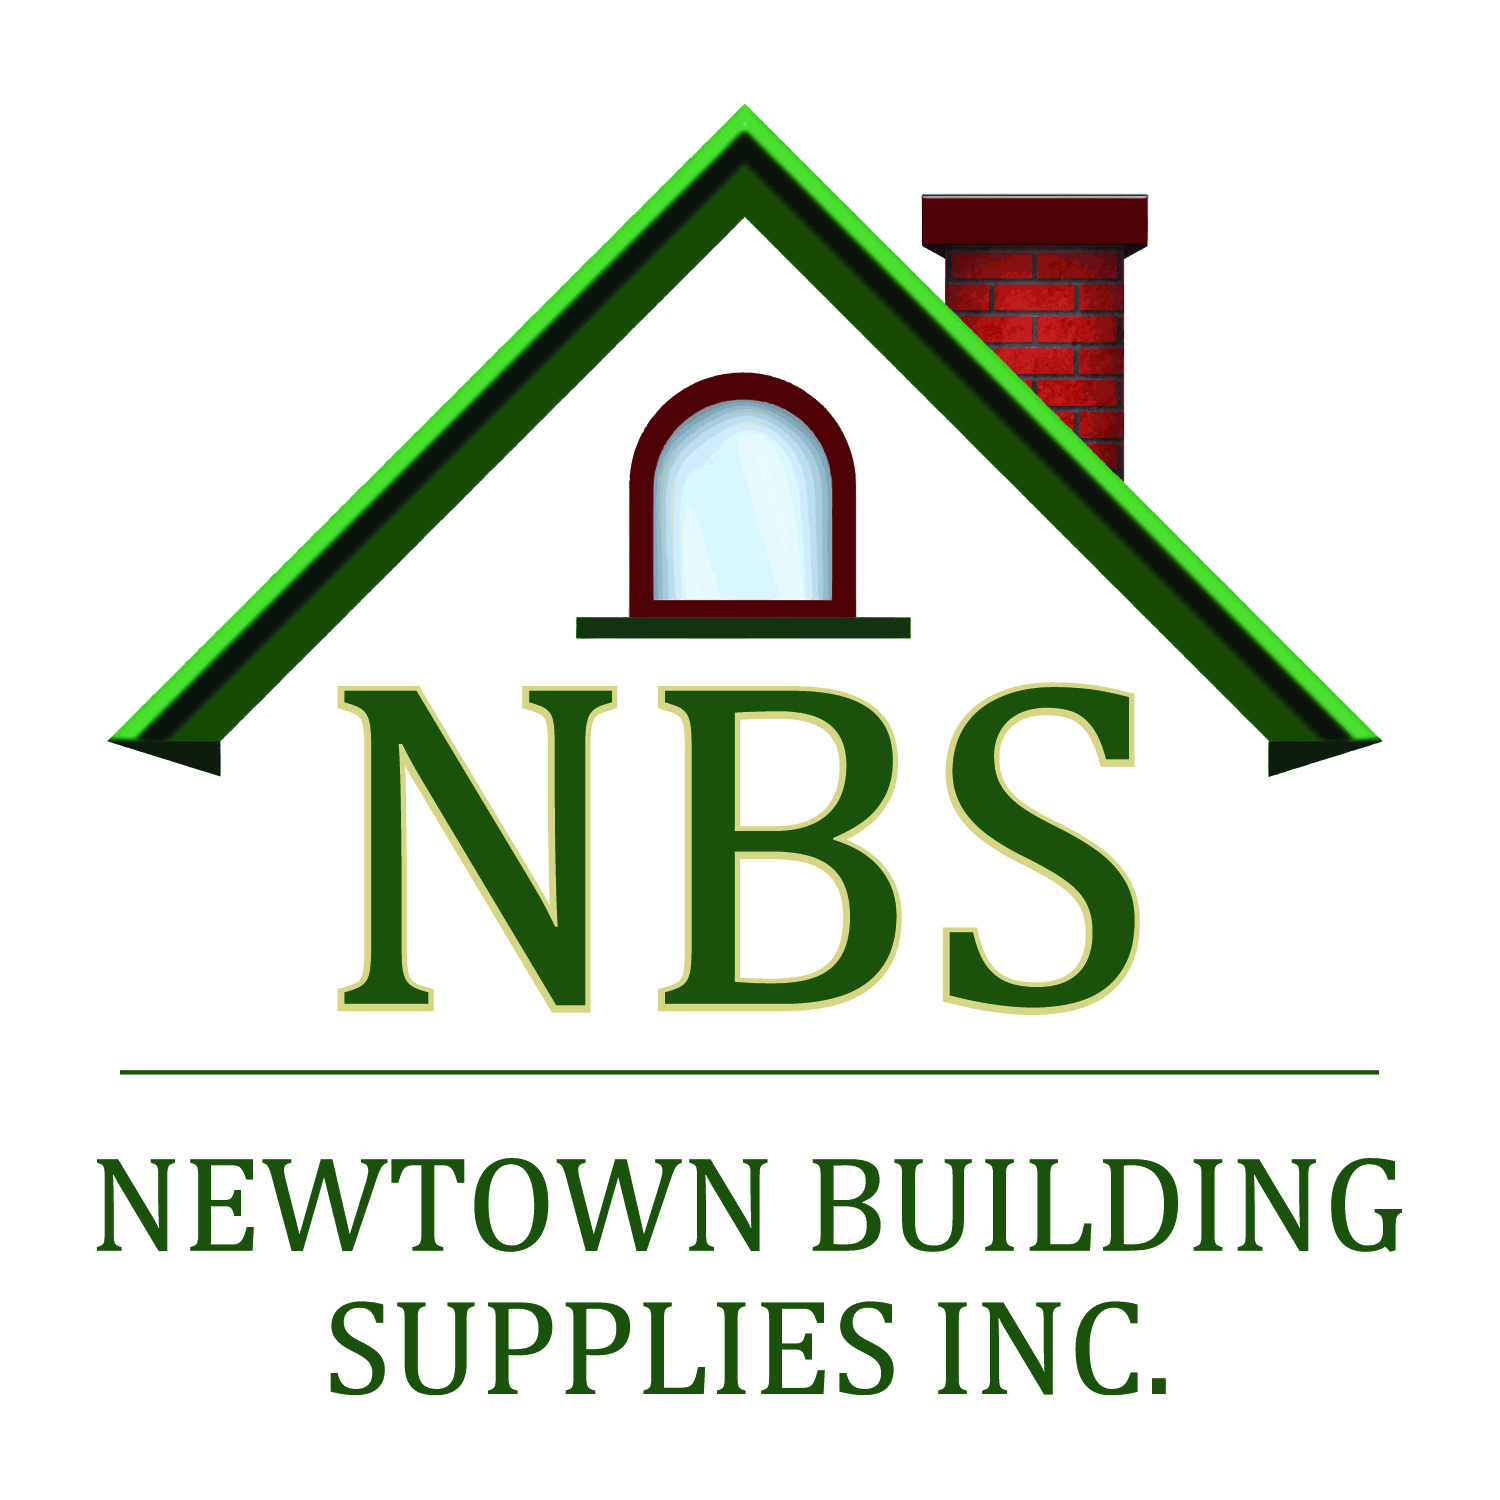 Newtown building supplies flyer rubin communications for Newtown builders